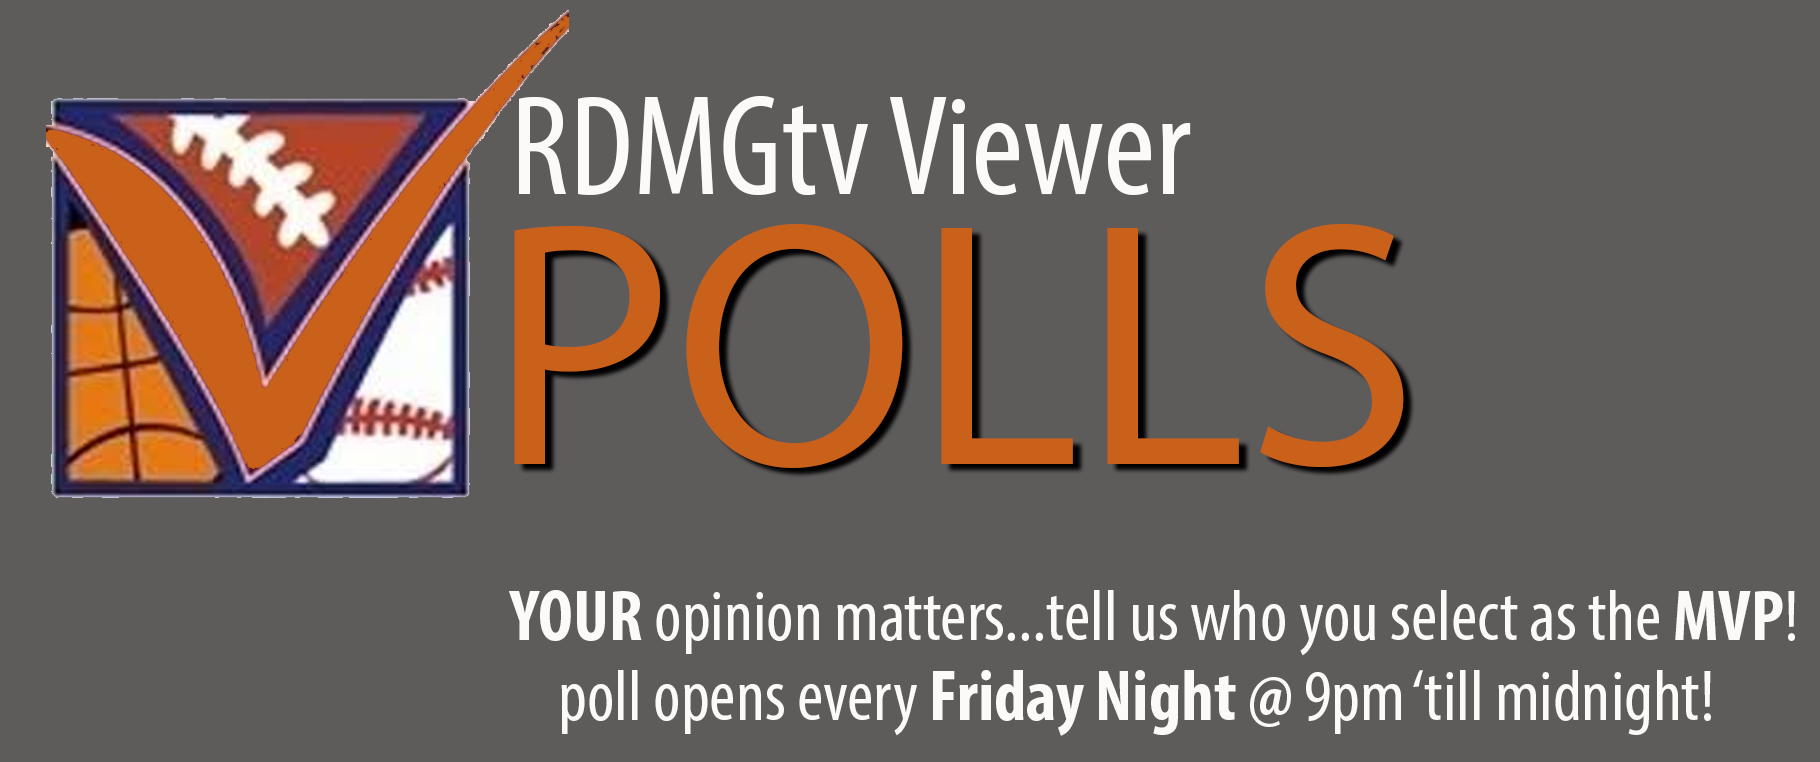 Viewer Choice Poll Cropped.png